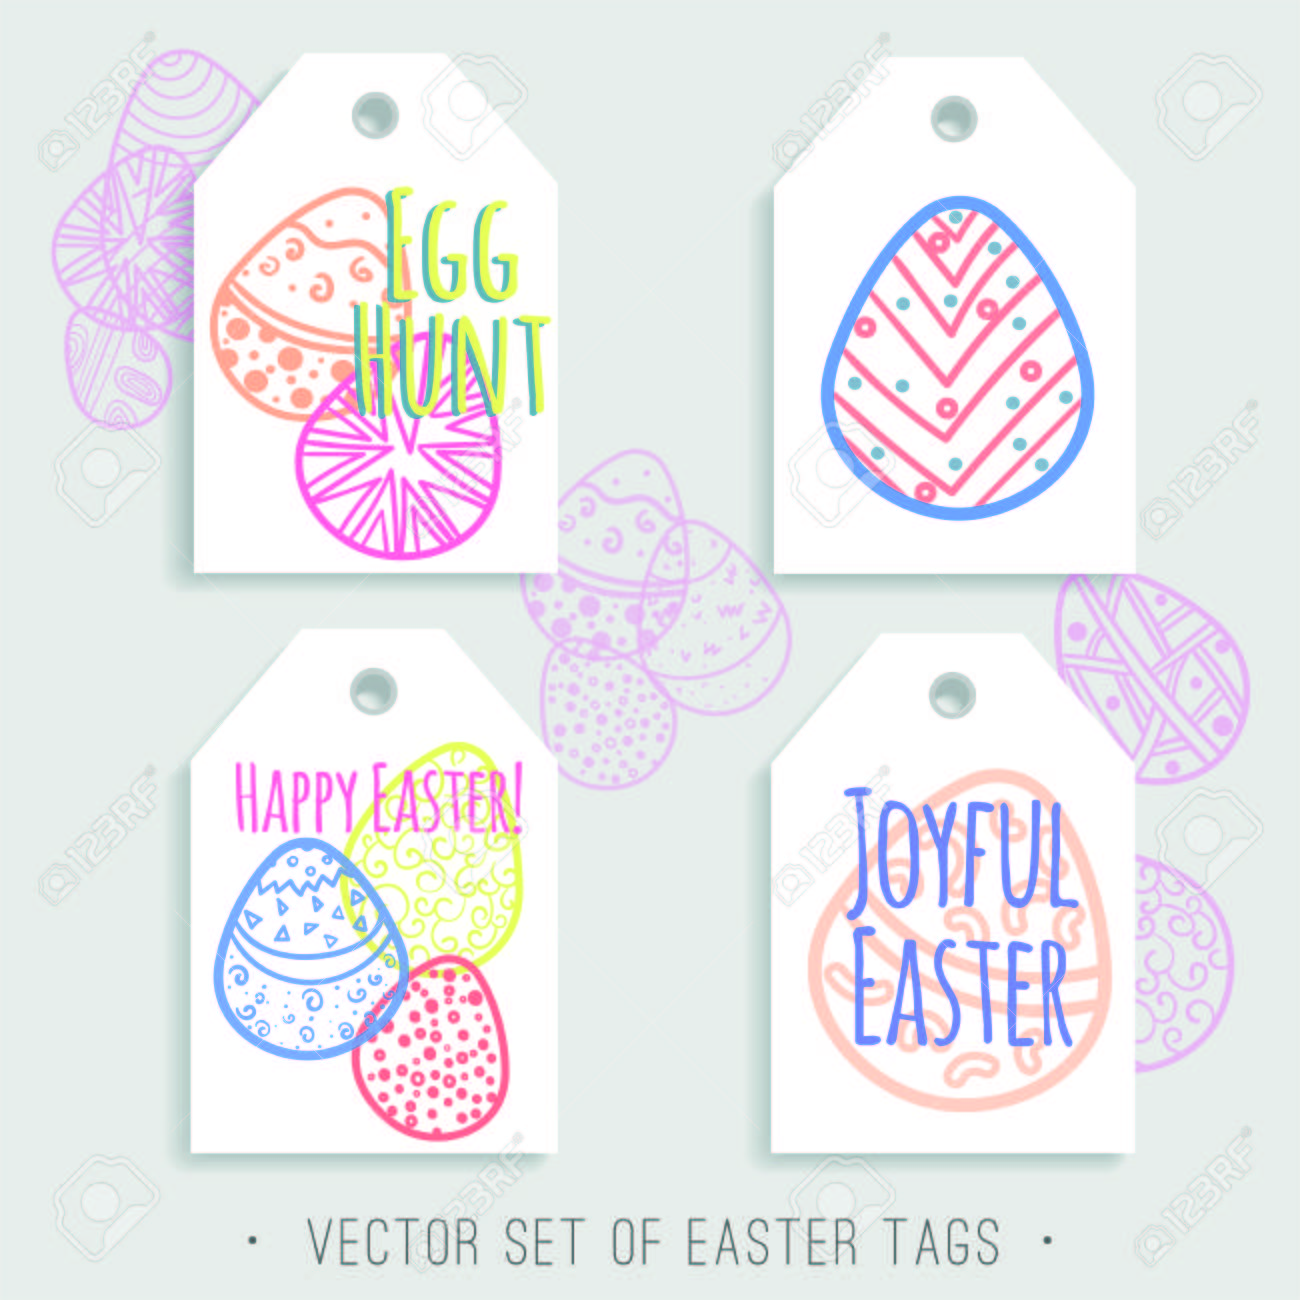 image relating to Printable Easter Tags titled Vector fixed of printable Easter tags with vivid eggs. Blue, crimson,..